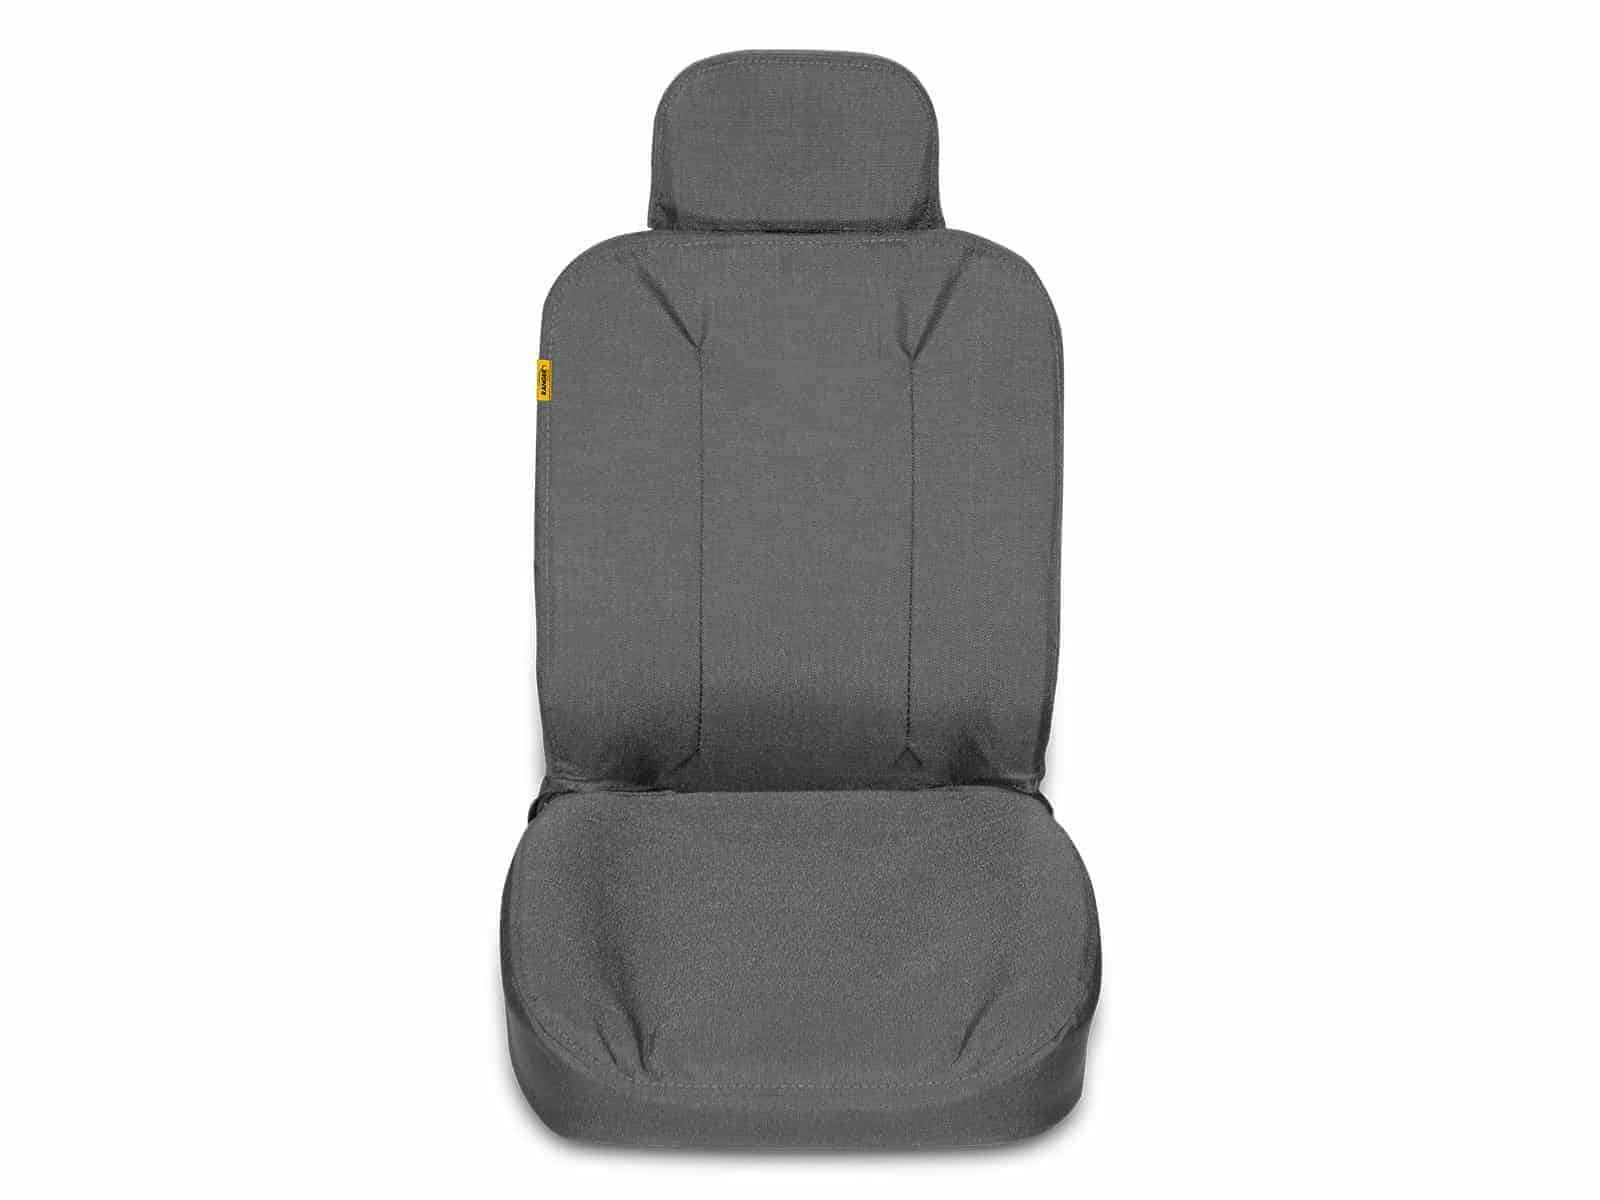 Nissan Nv200 Chevy City Express Van Seat Covers Custom Fit